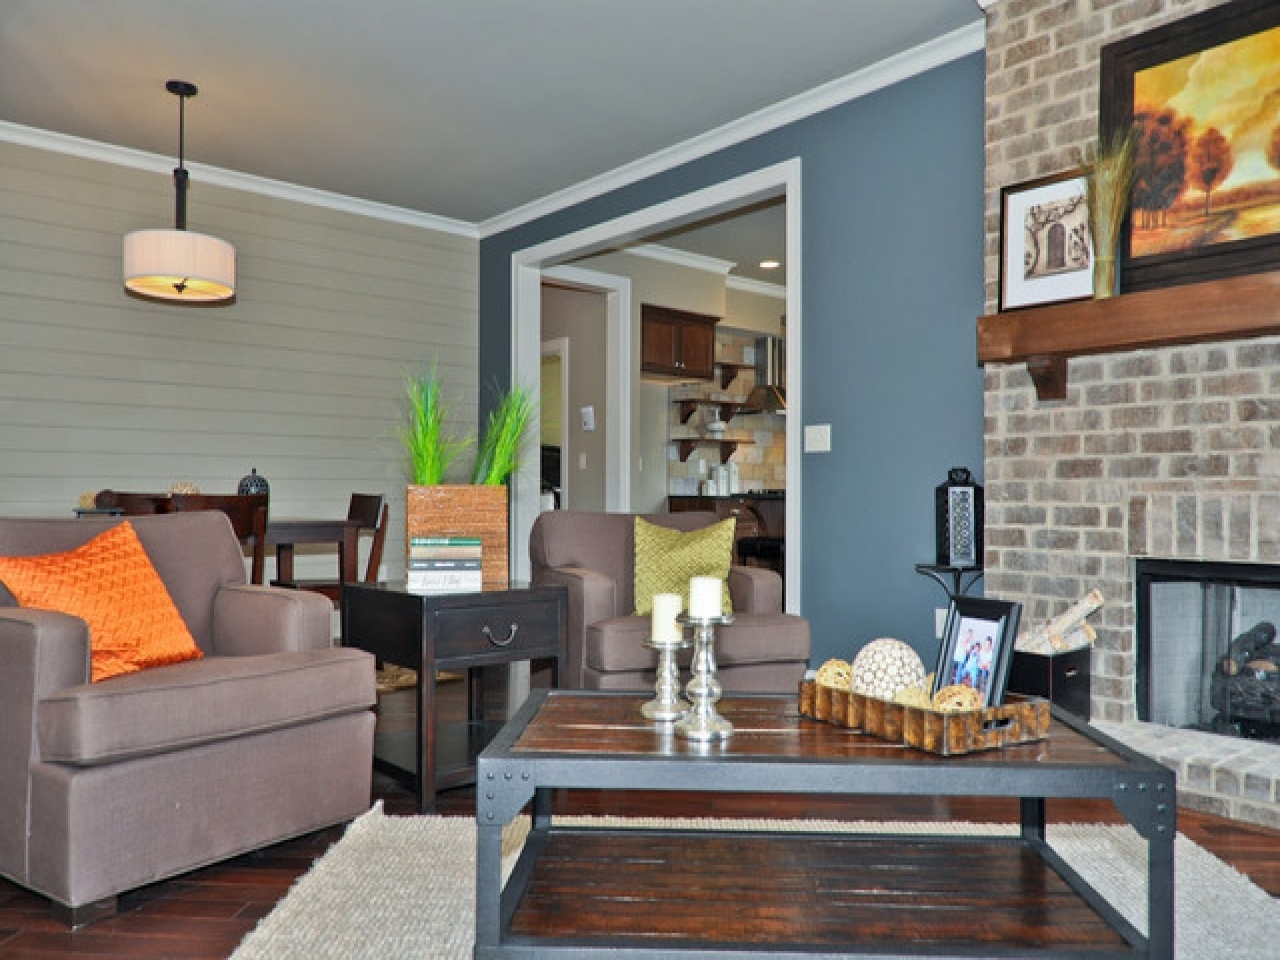 Living Room Blue Walls Light Ideas Wall Decor Color With Brown Throughout Most Popular Wall Accents For Blue Room (View 9 of 15)